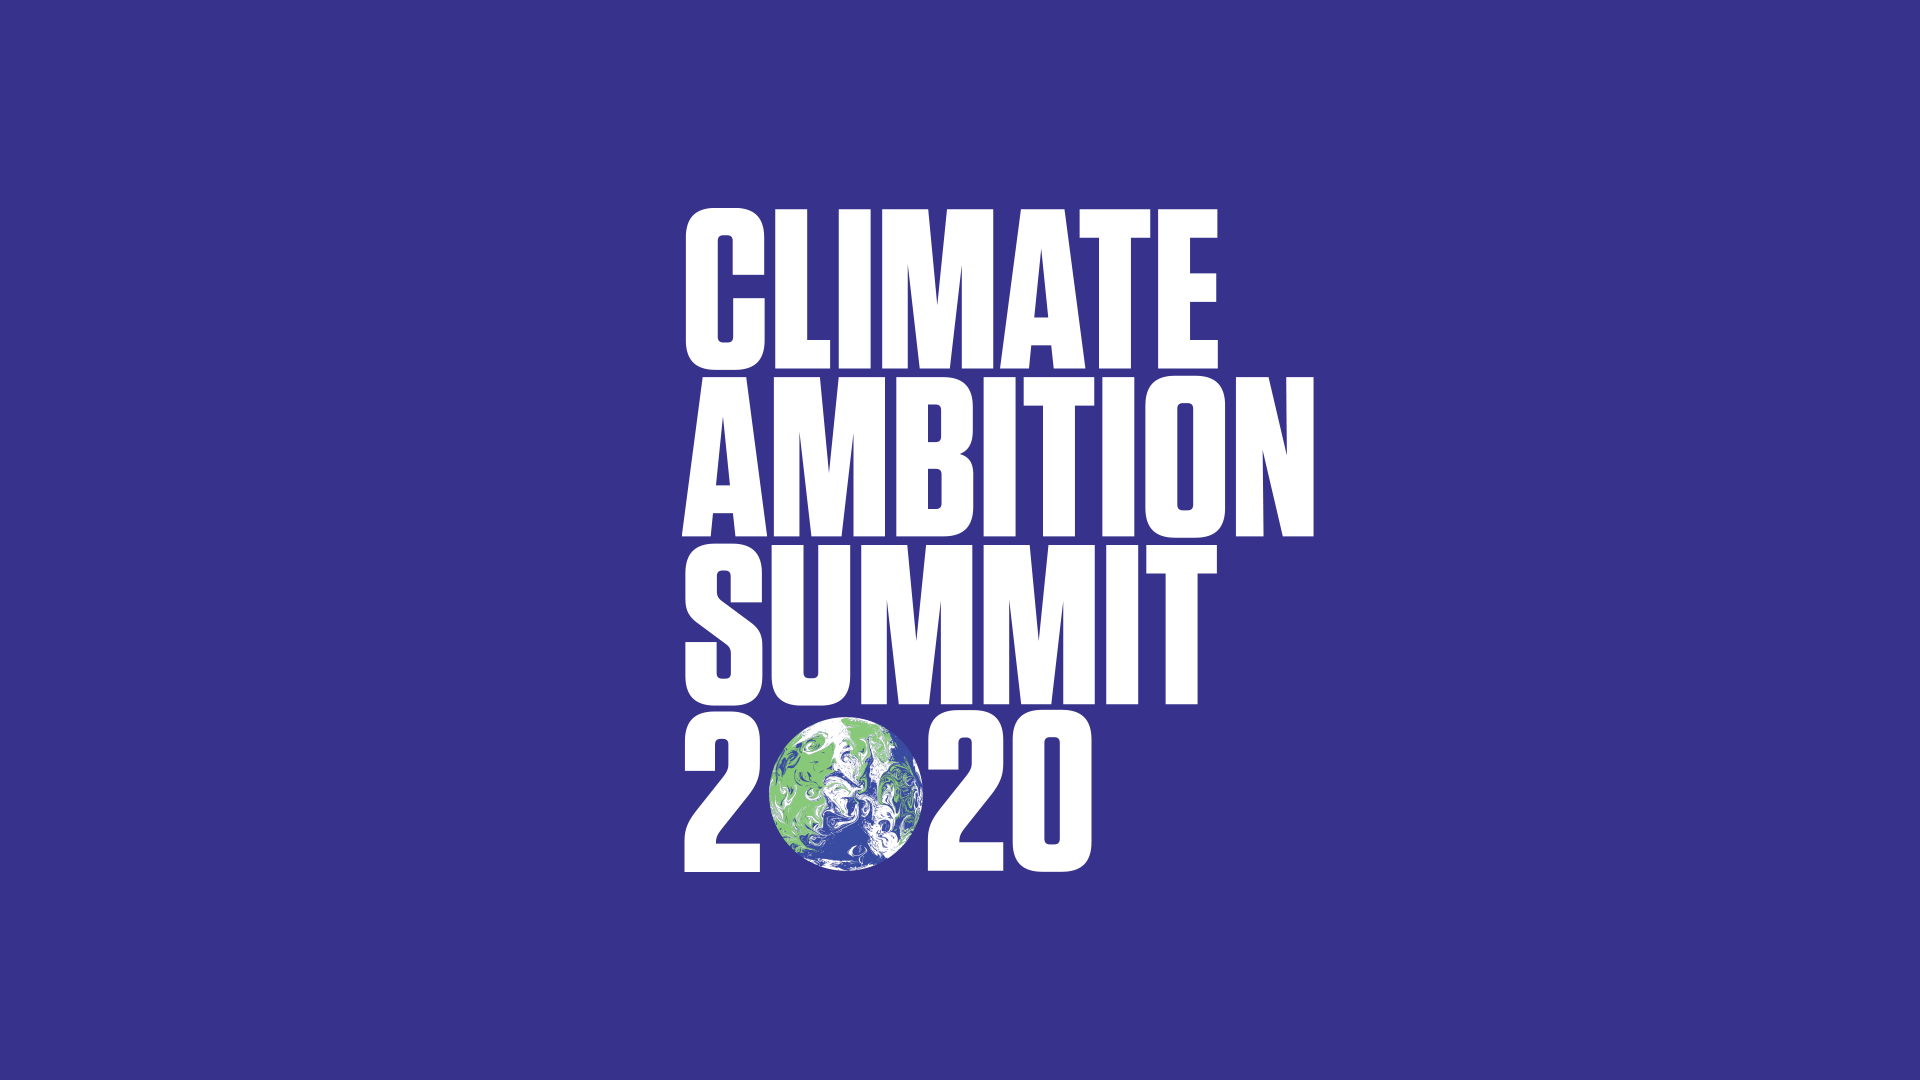 climate ambition summit